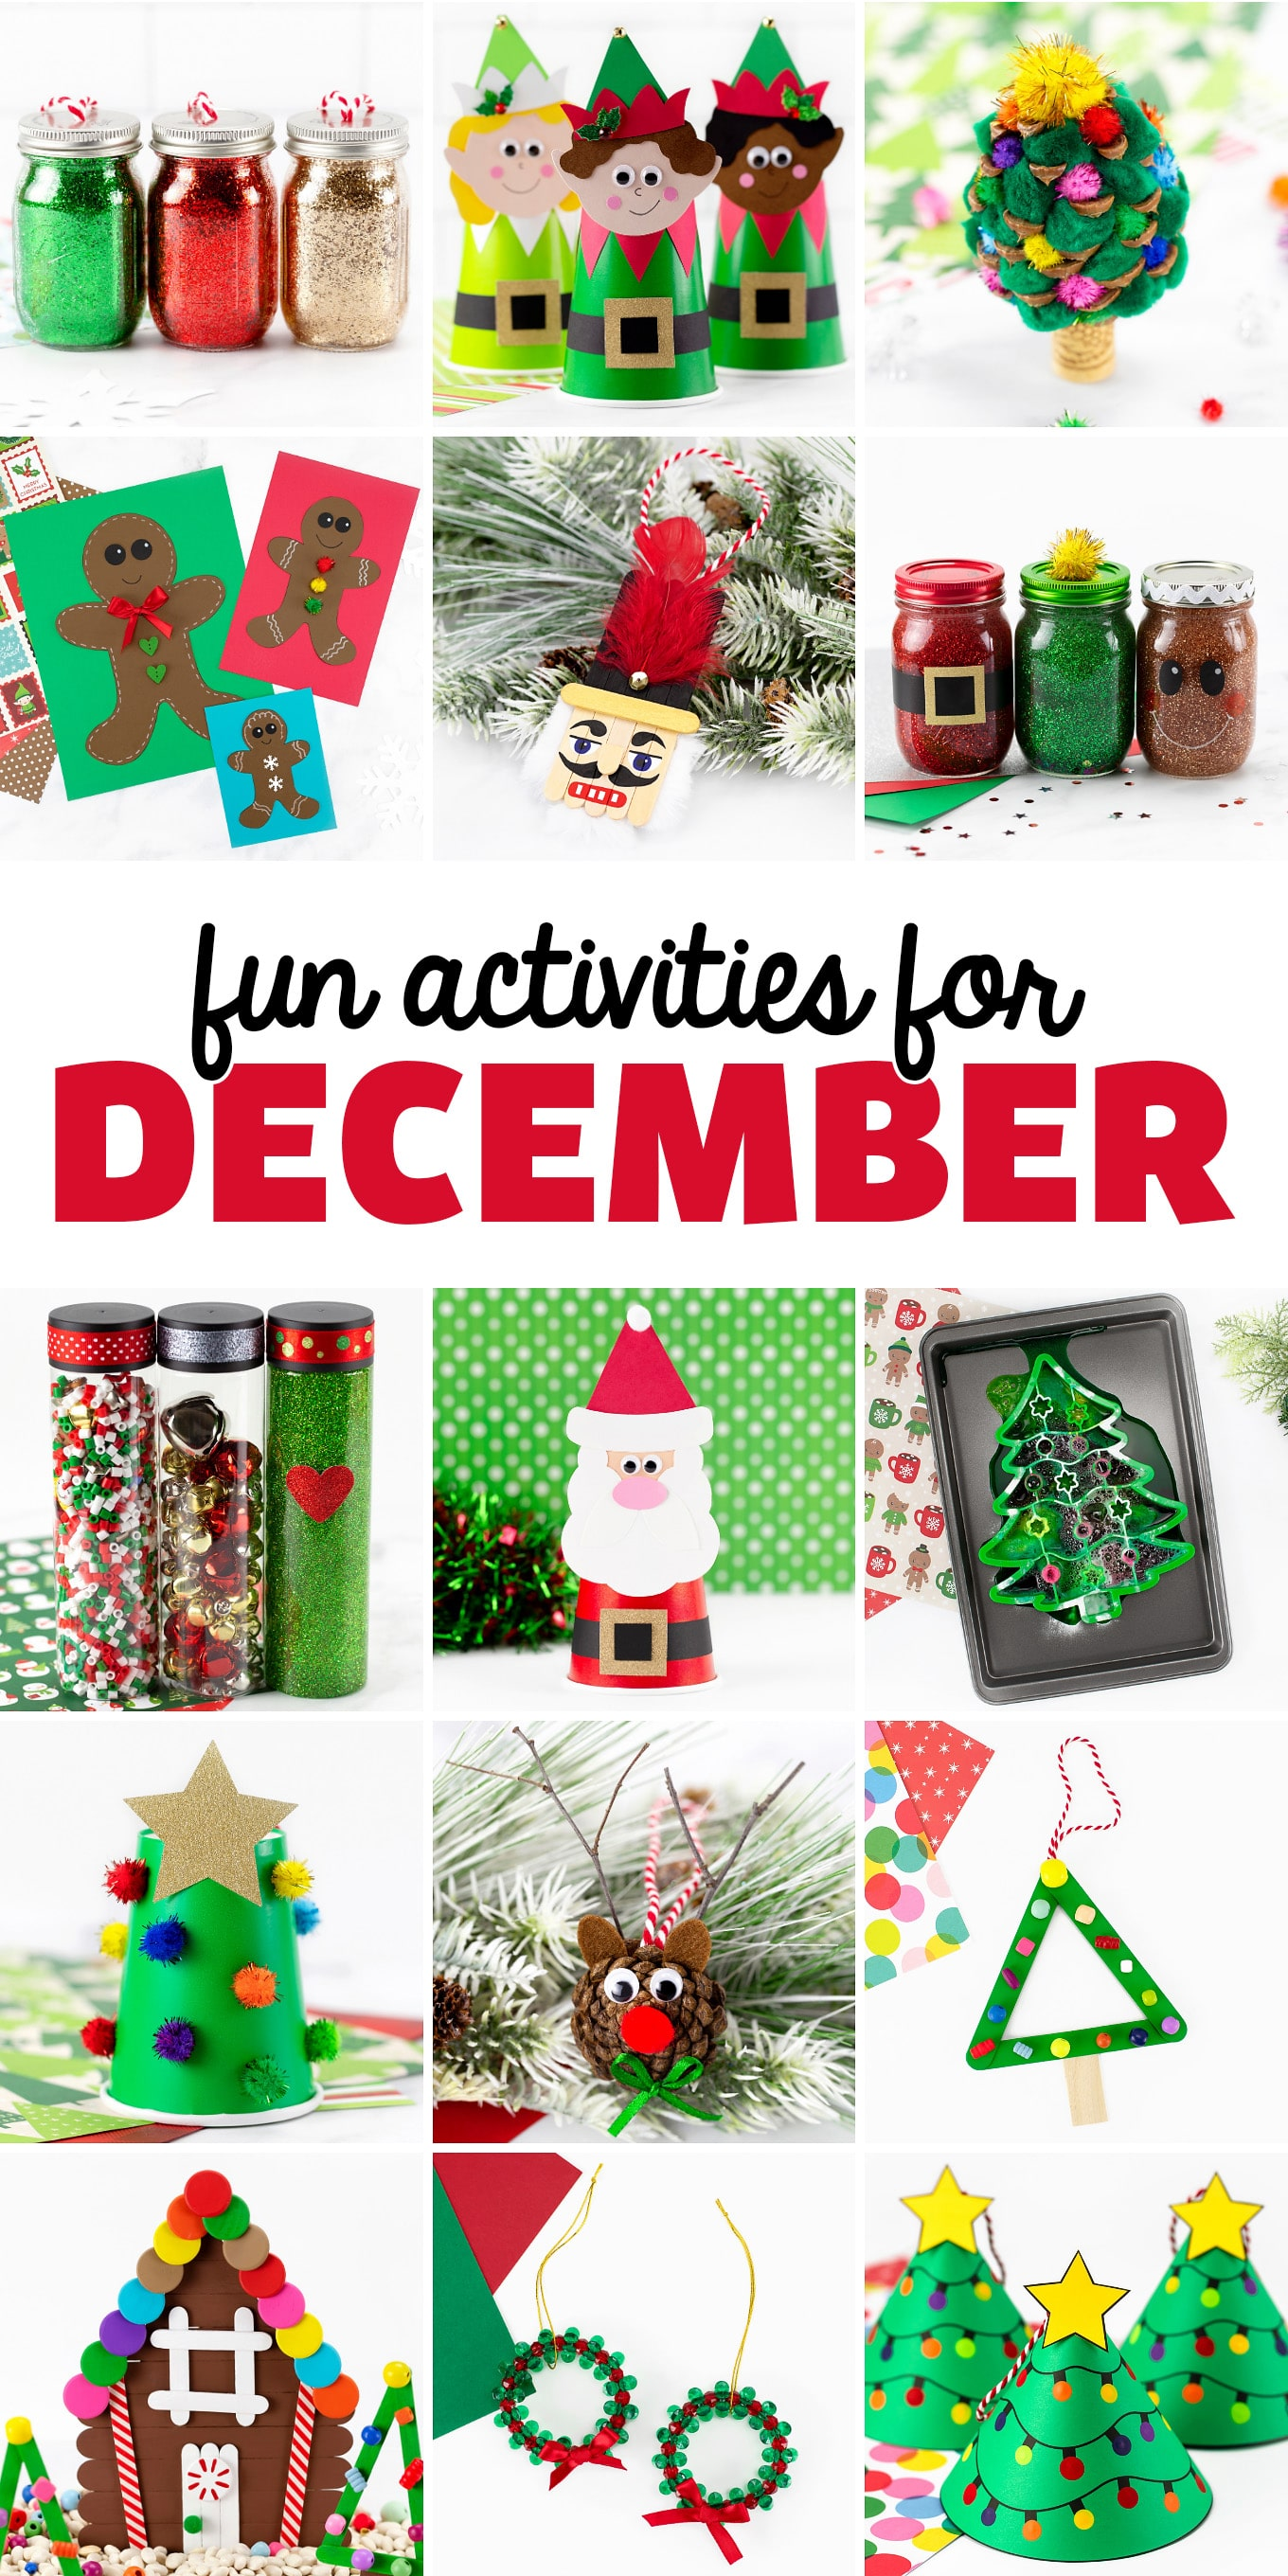 December Activities for Kids - Celebrate the warmth of the holiday season with a variety of December Activities that are family-friendly, creative, and fun.  via @firefliesandmudpies